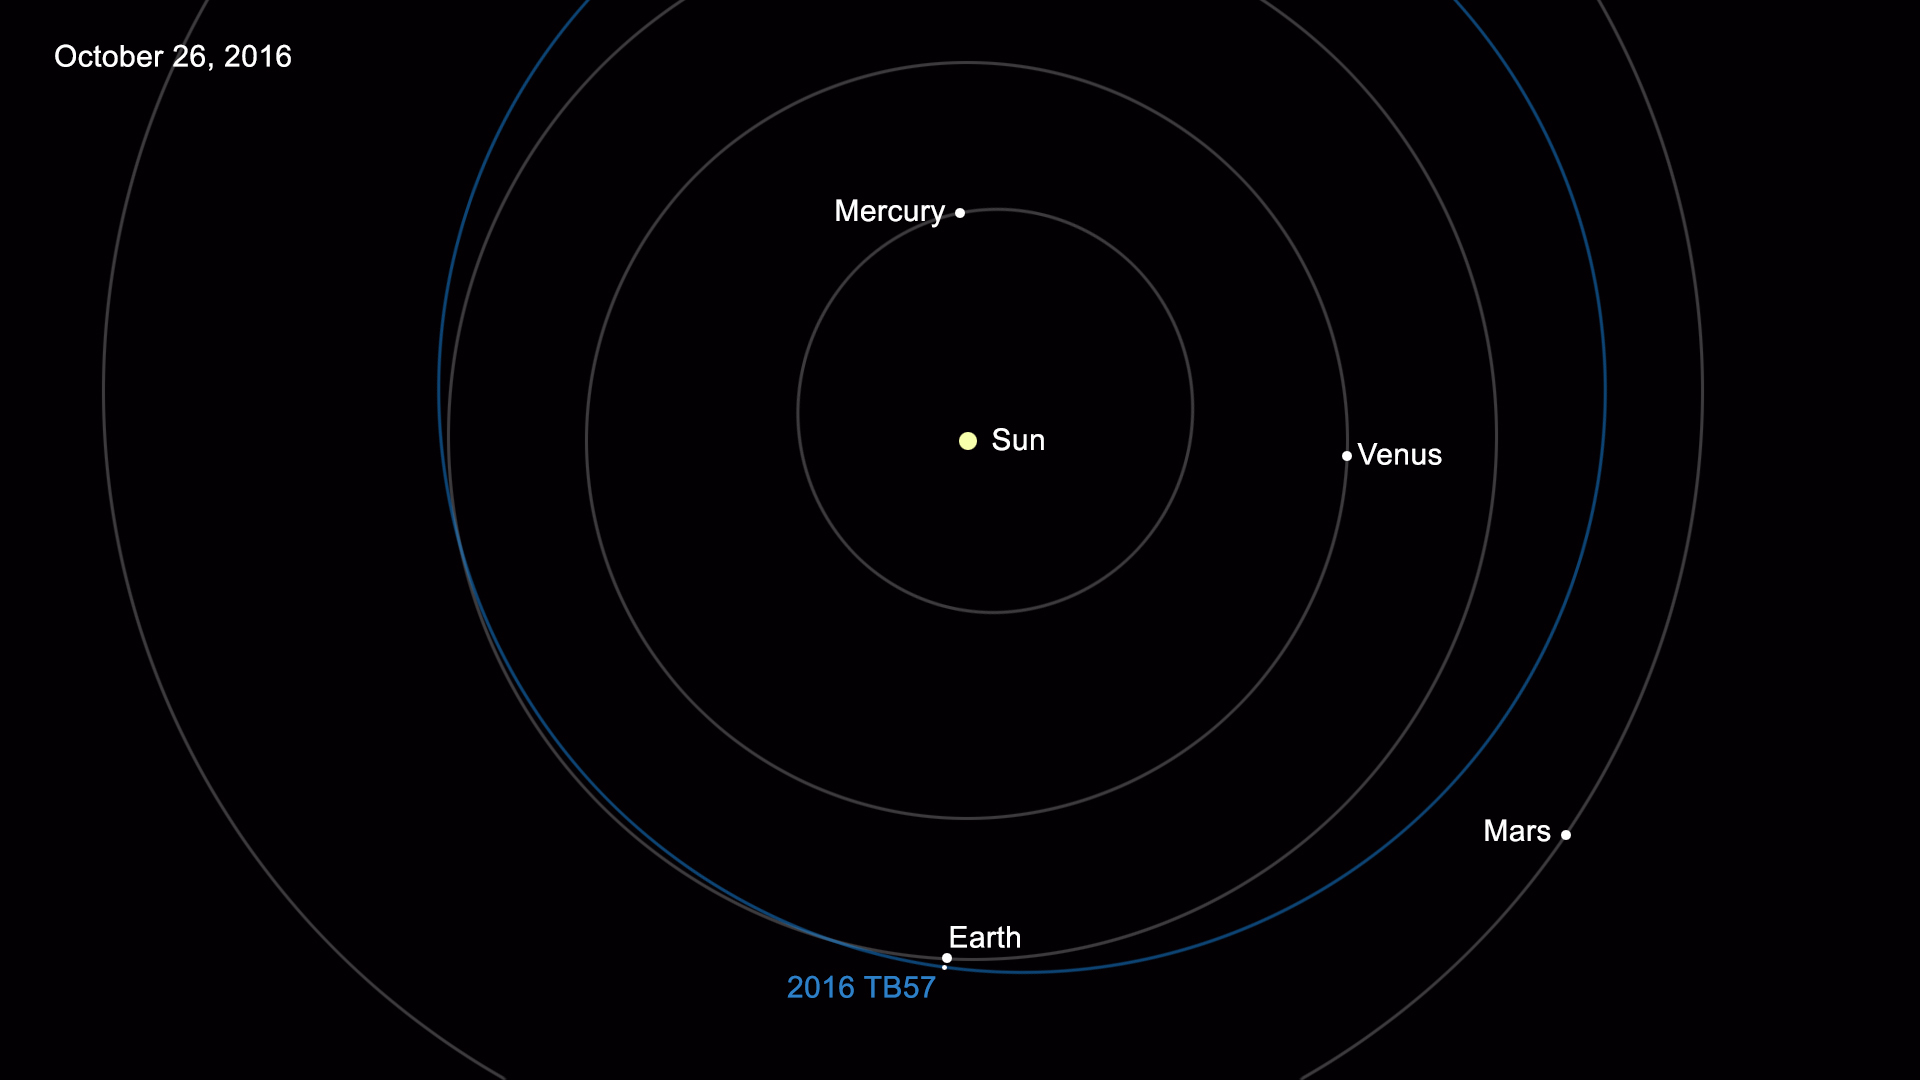 Catalog of Known Near-Earth Asteroids Tops 15,000 | NASA